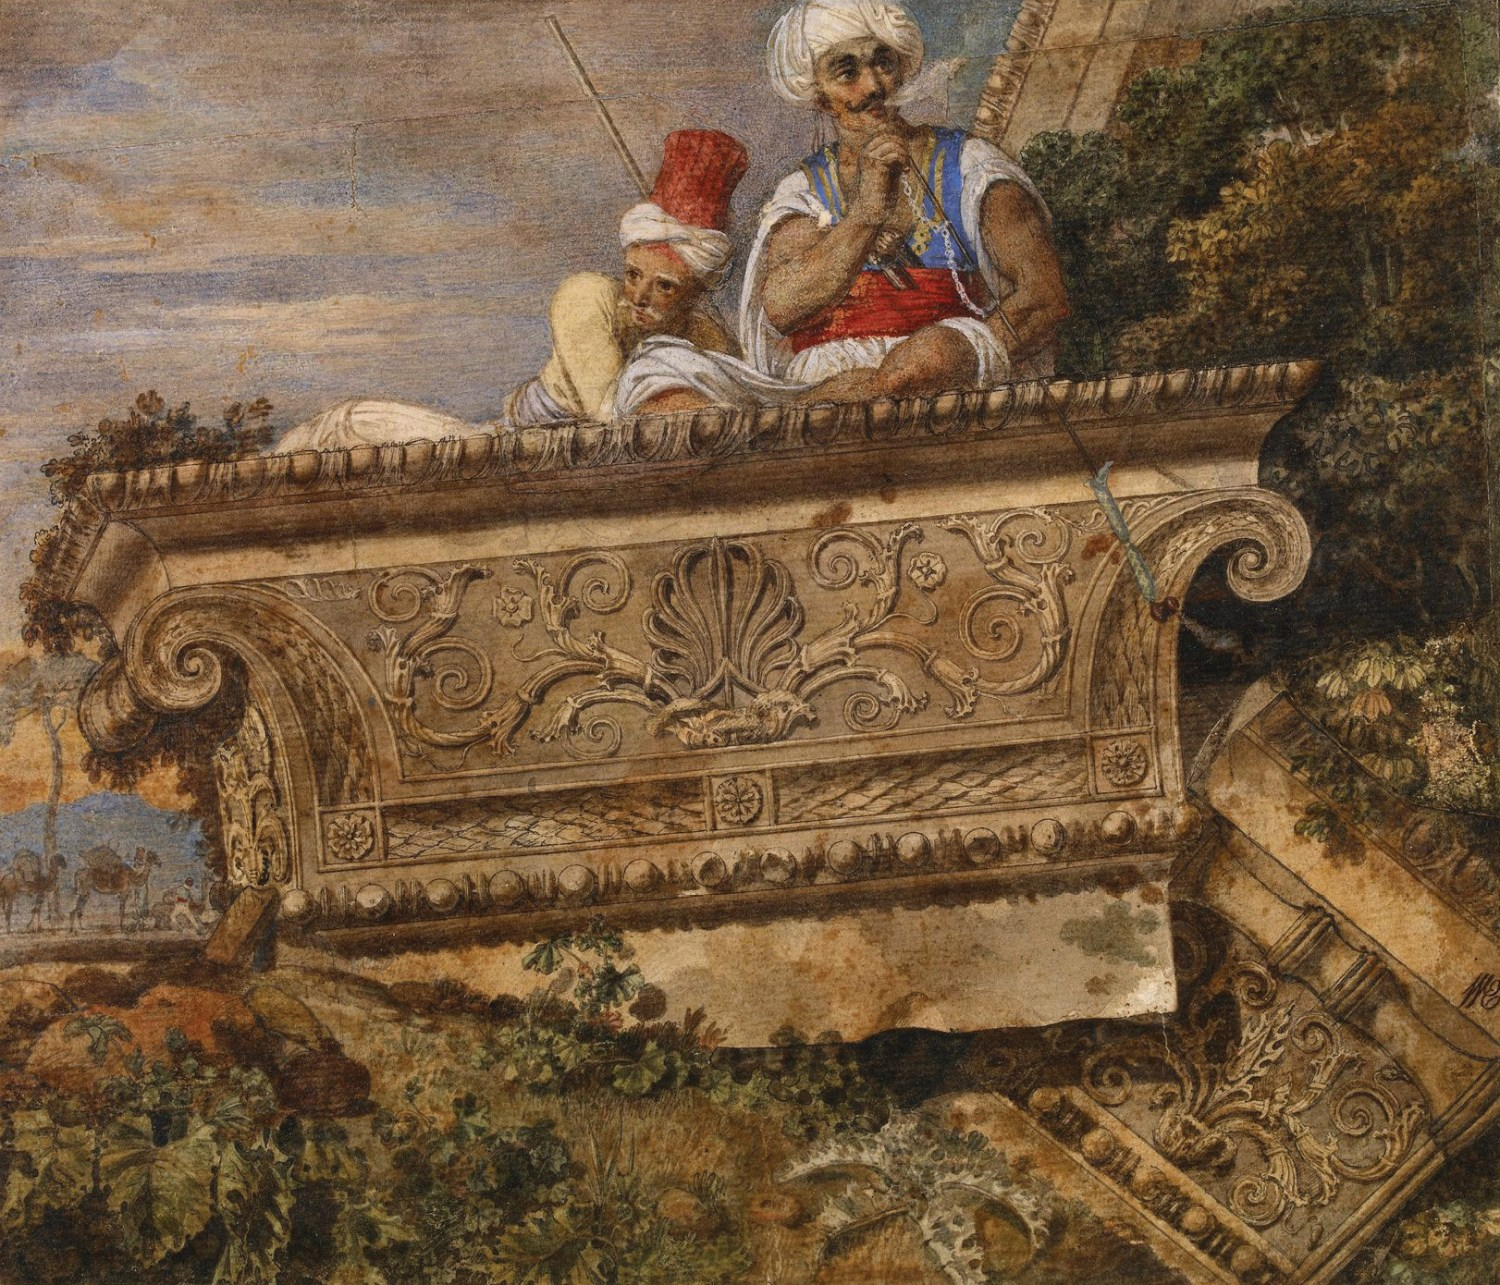 BELOW Capital of one of the antae from the temple of Apollo at Didyma, October 1765. Watercolour and body colour, with some pen and grey ink; made up of several small pieces of paper stuck together. Size: 180 x